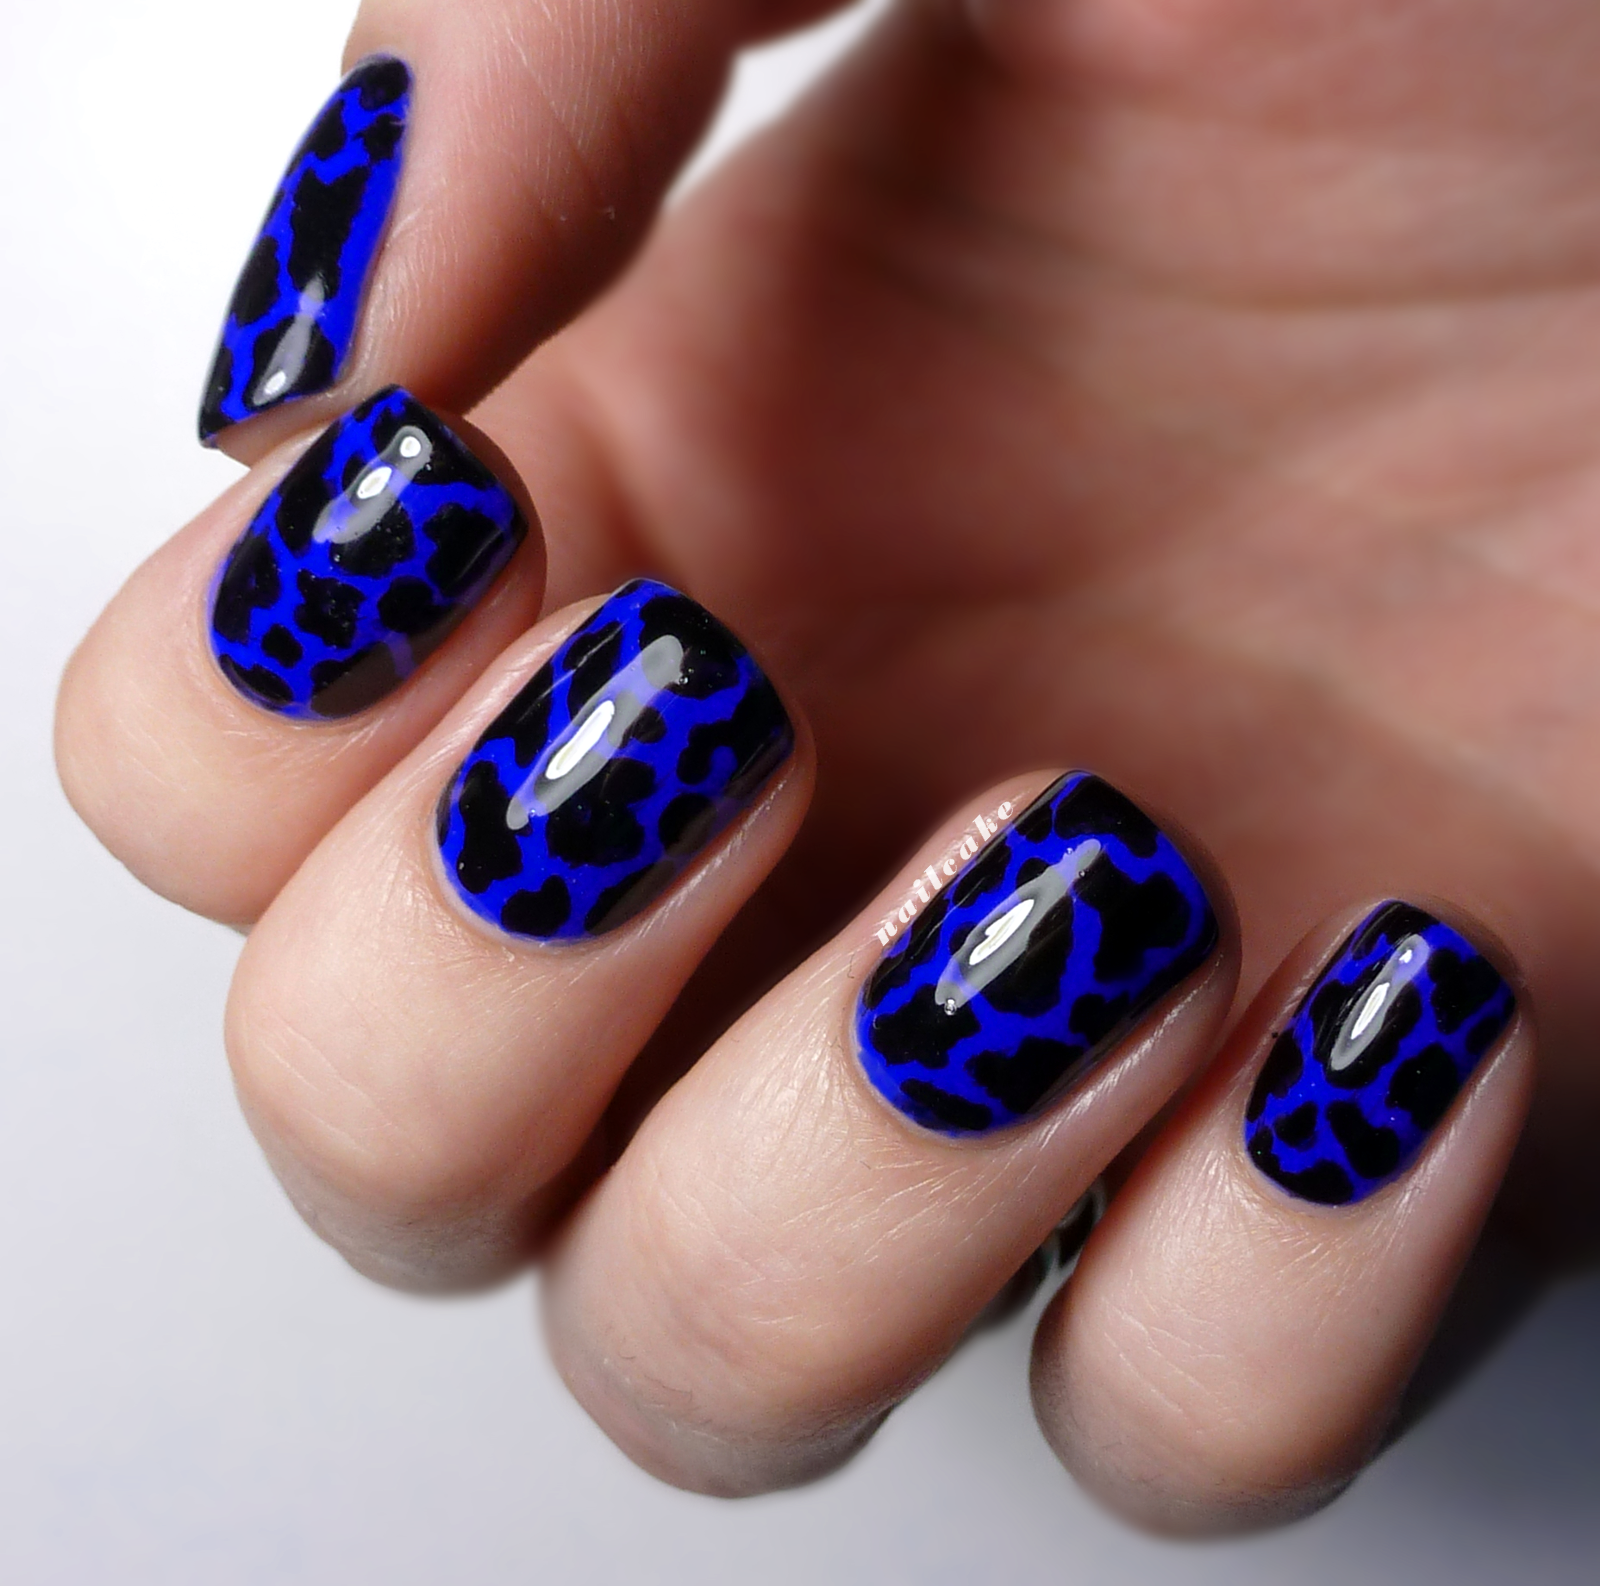 16 Blue And Black Nail Designs Images